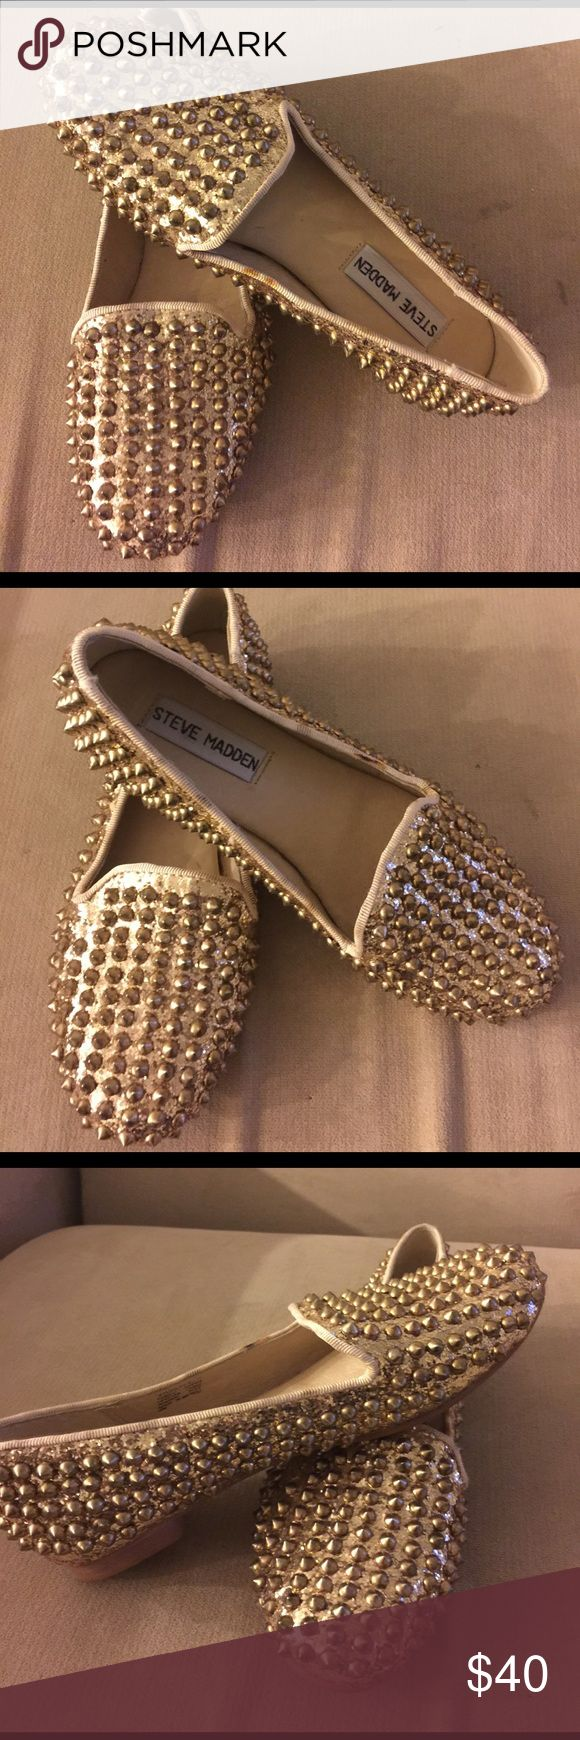 Steve Madden Leather shoe Gold Studs. Size 51/2. Steve Madden Gold  color. There are few spat of paint on the base but perfect condition. Steve Madden Shoes Flats & Loafers